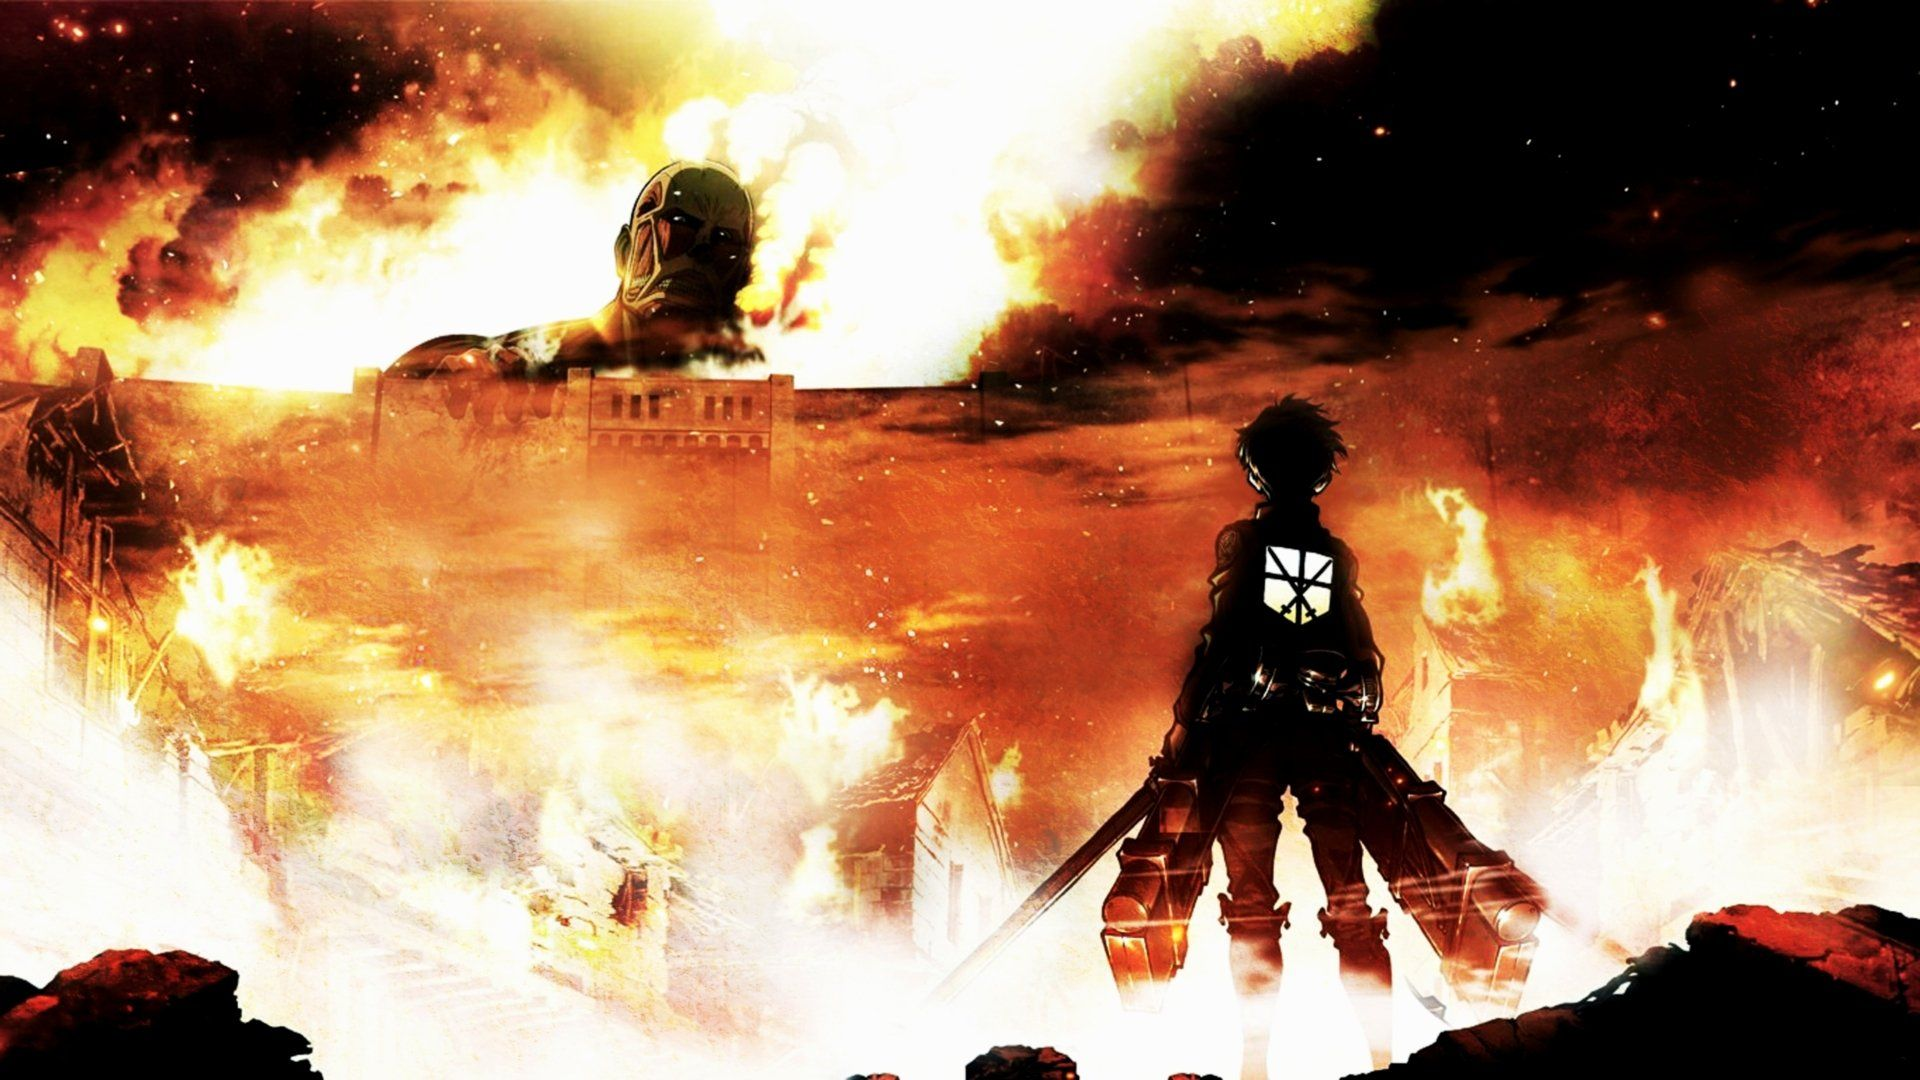 Attack On Titan Desktop Wallpapers Top Free Attack On Titan